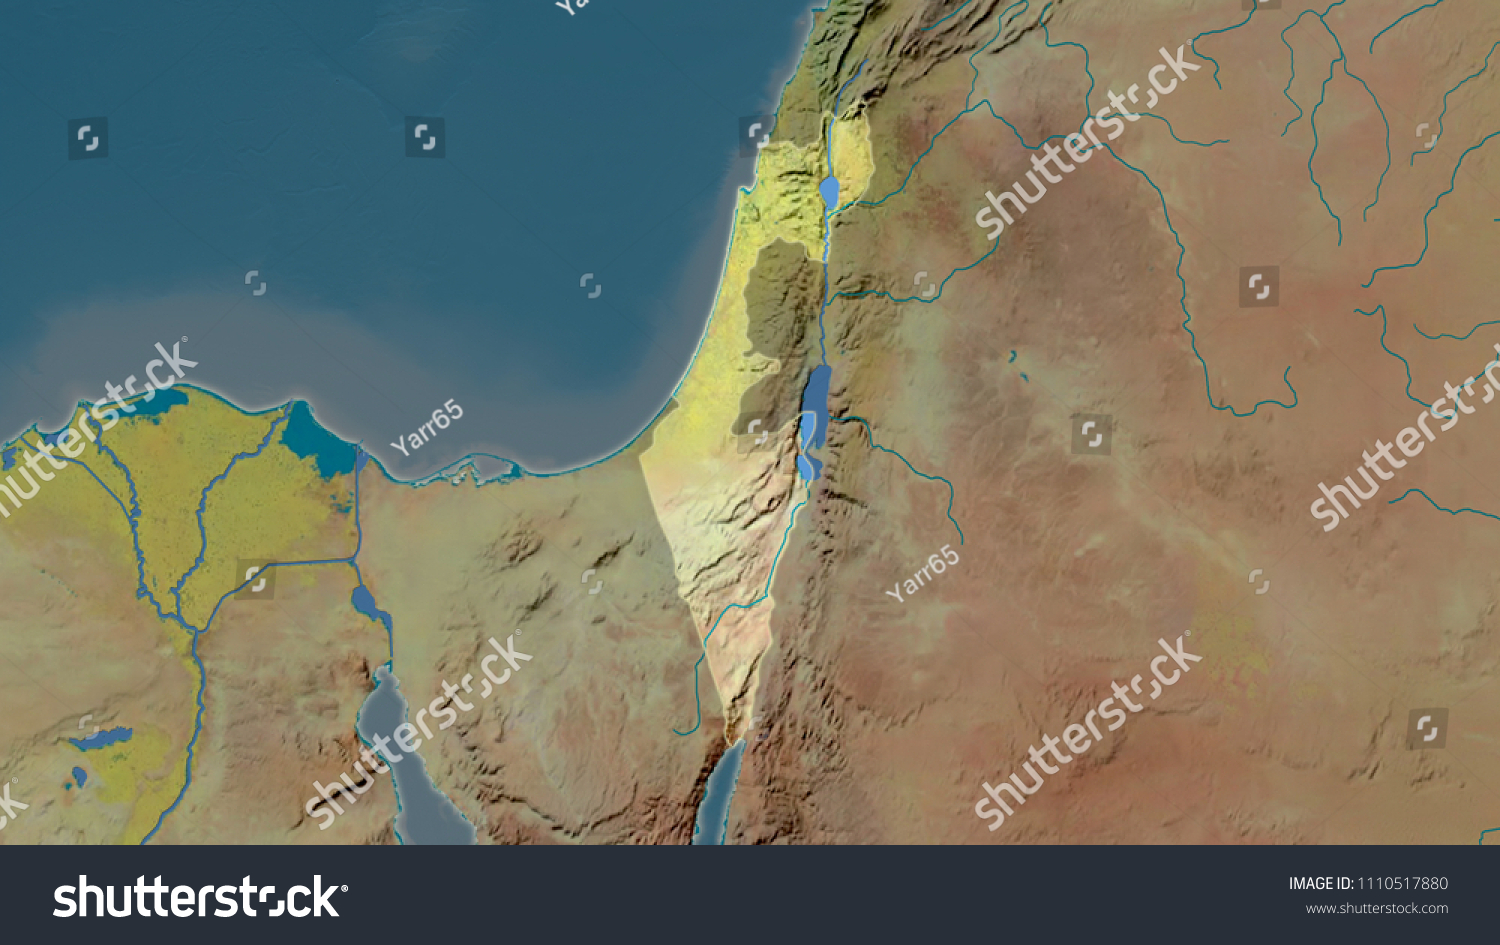 Israel Area Map Azimuthal Equidistant Projection Stock Illustration